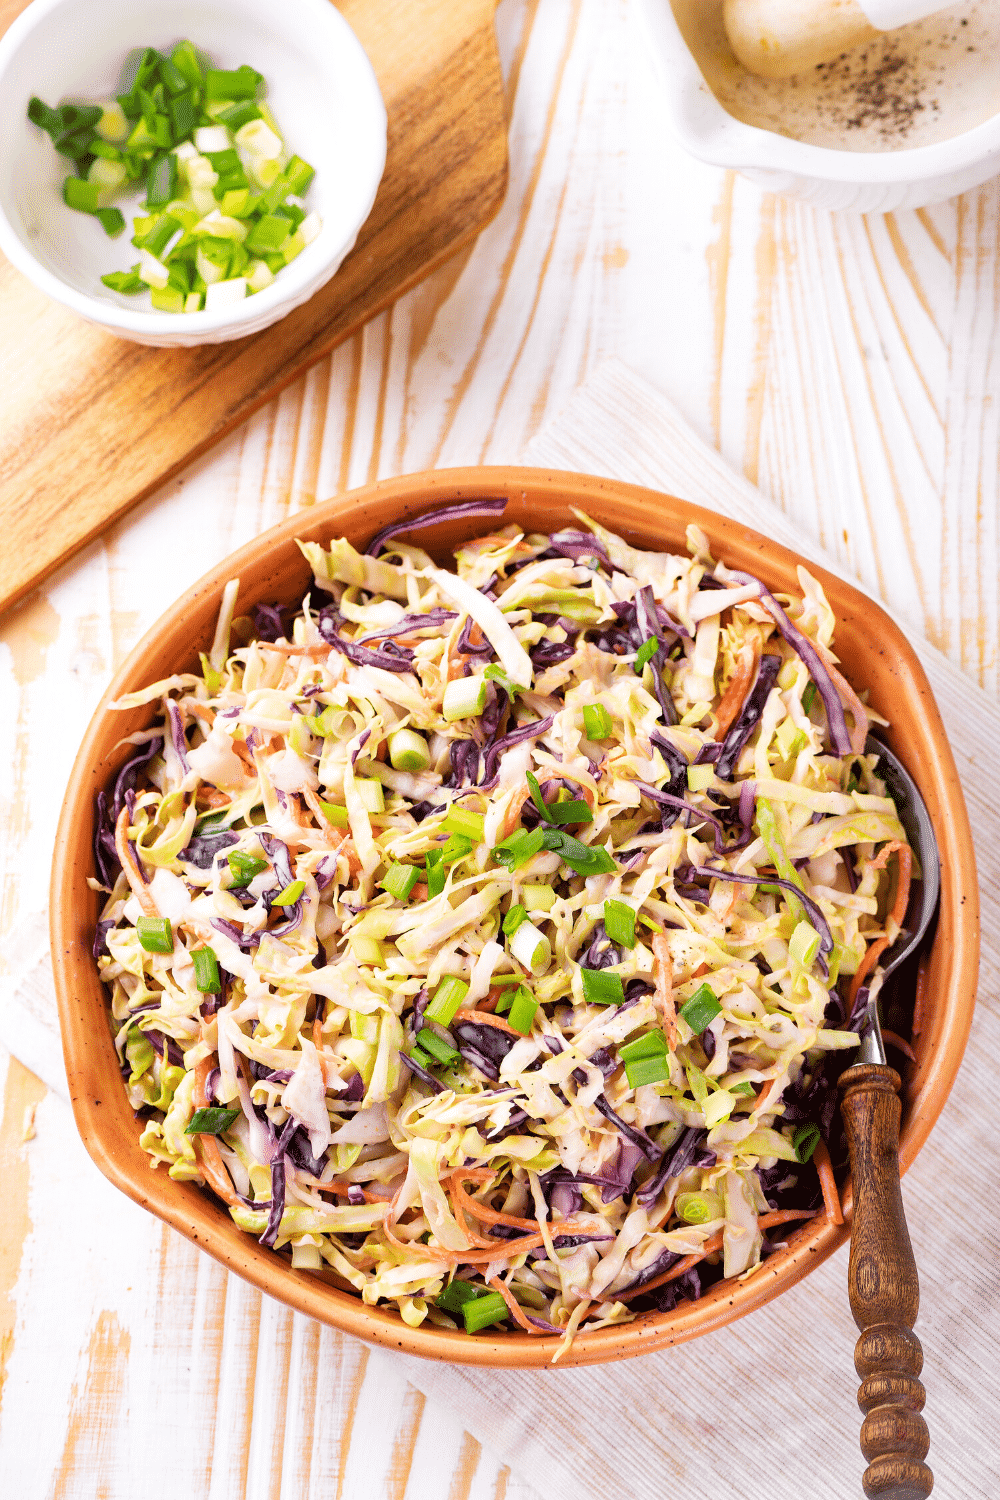 An overhead view of keto coleslaw in a wooden bowl. A spoon is emerged in the keto coleslaw and the bowl is on a white tablecloth on a wooden counter.